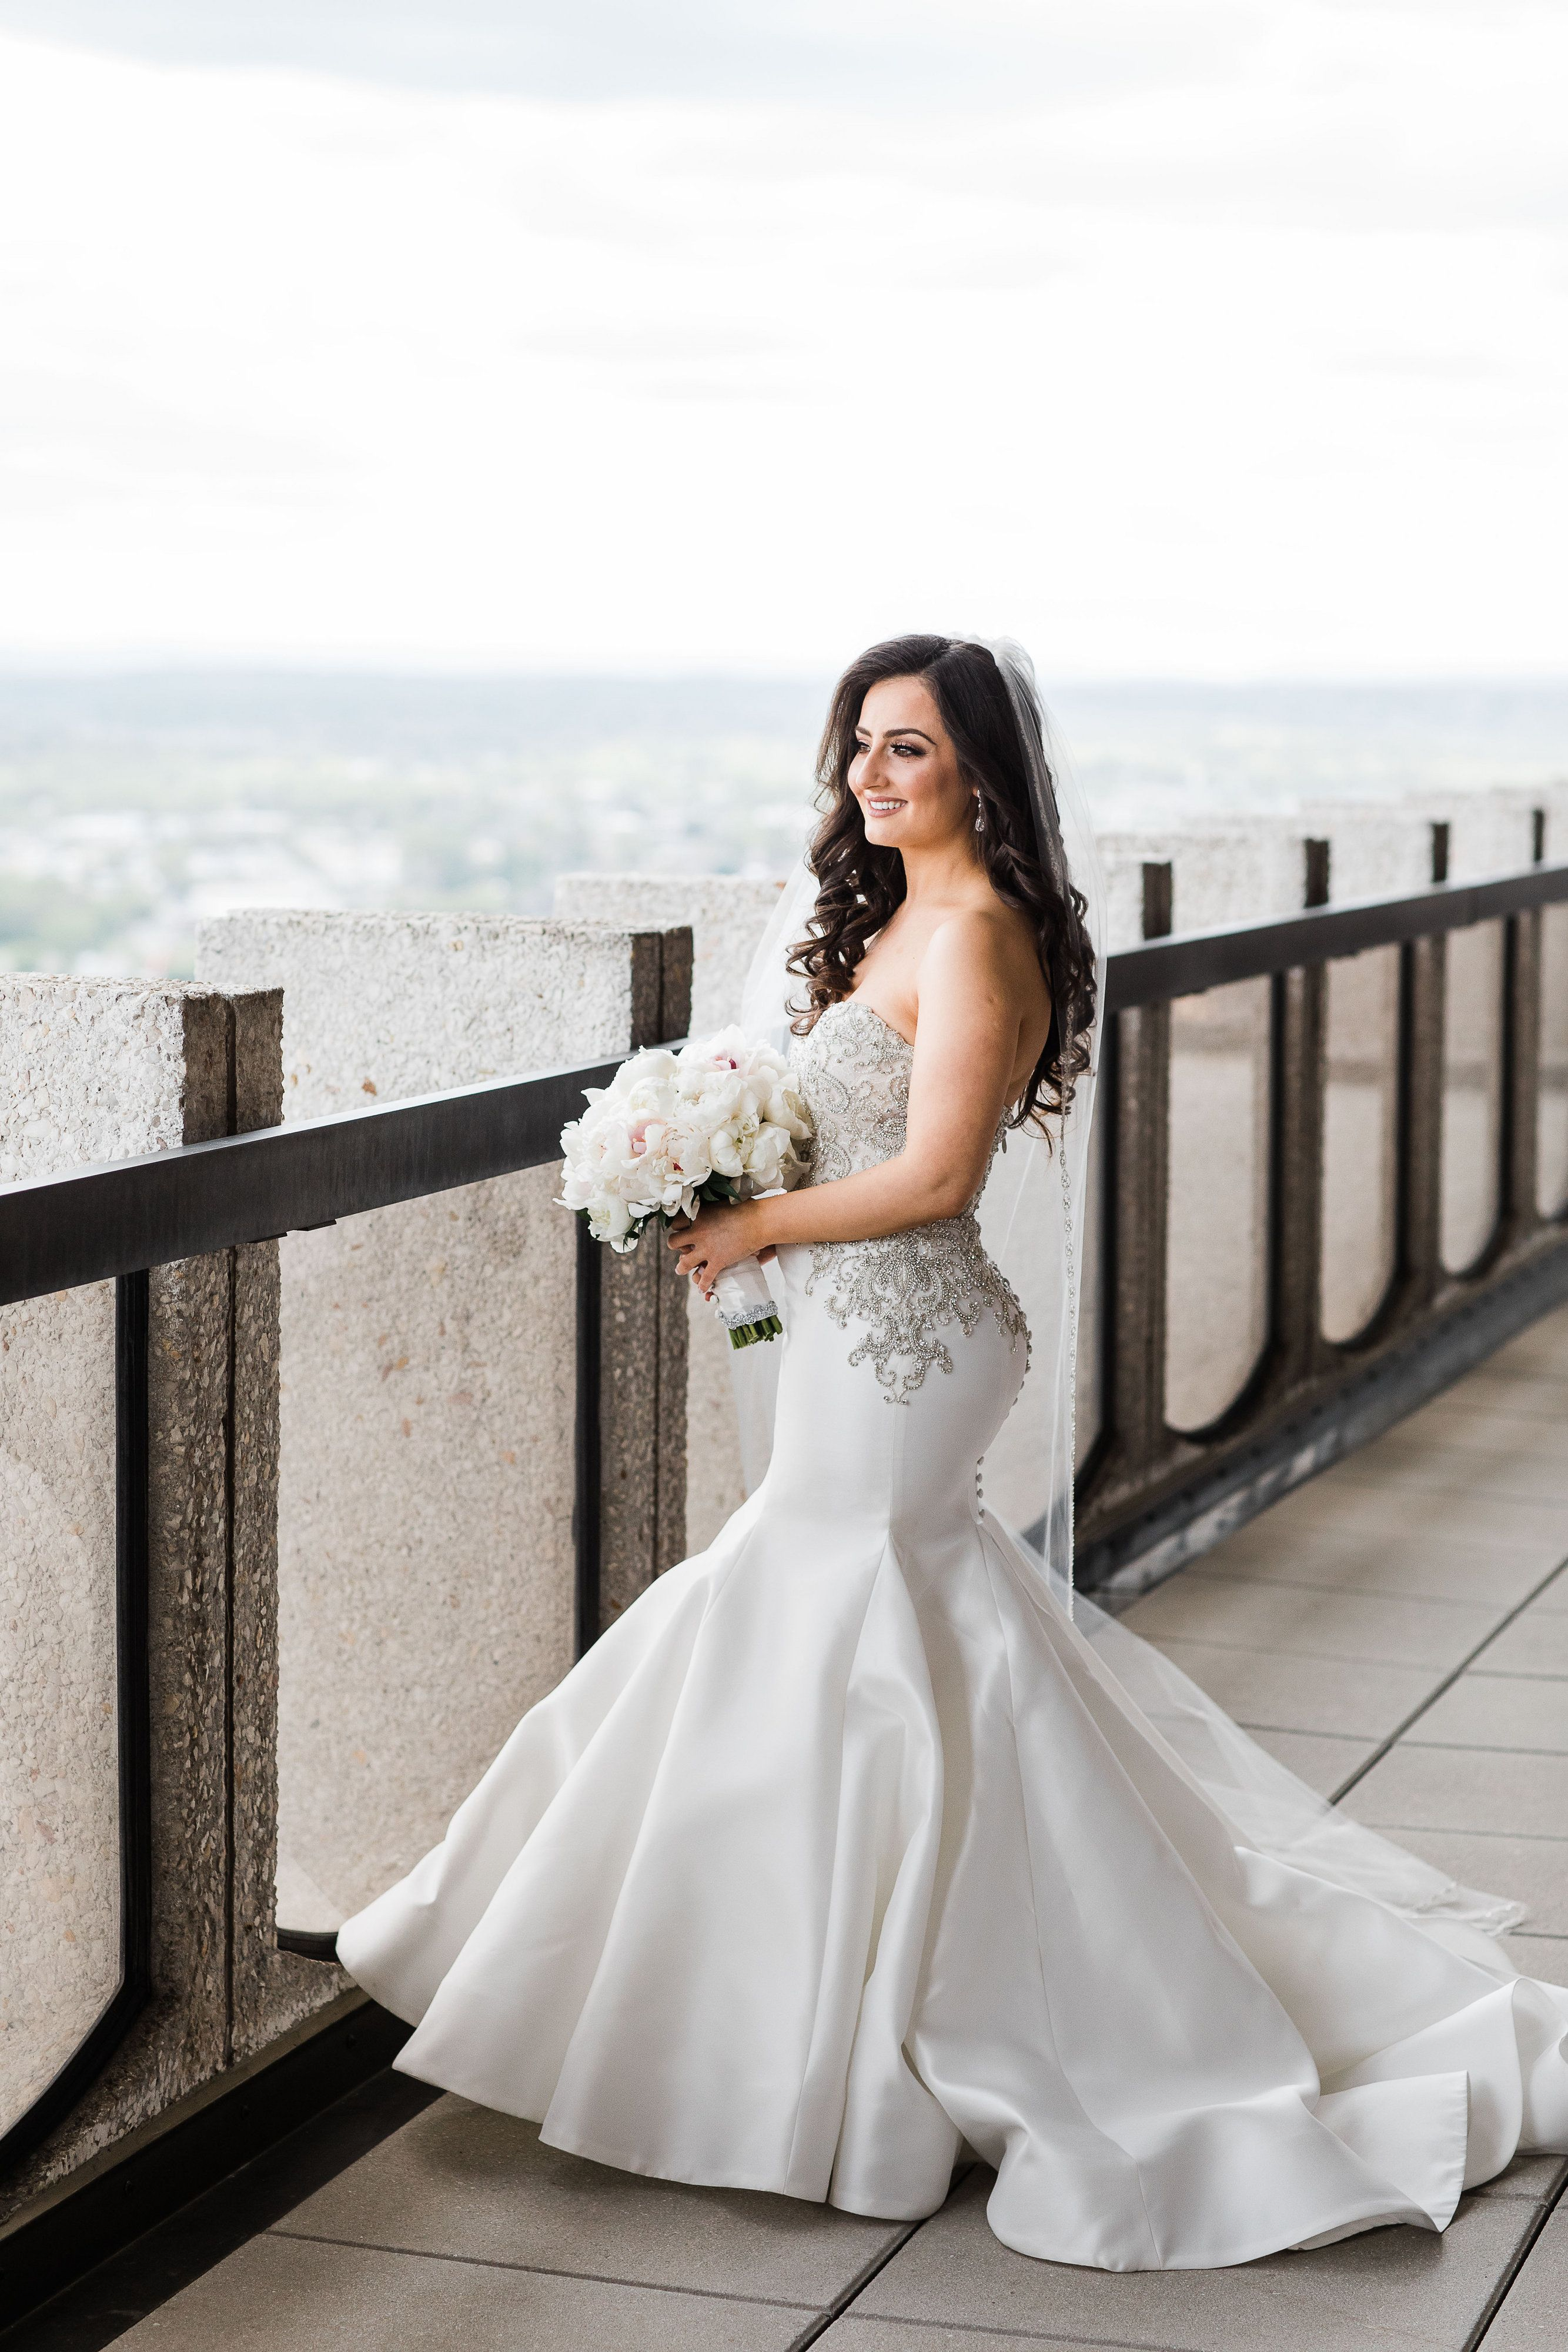 Anila In The Lourdes Wedding Dress By Anne Barge The Mermaid Silhouette Silk Fabric And Dramatic Beaded Bodi Wedding Dresses Bridal Inspiration Bridal Gowns [ 4000 x 2667 Pixel ]